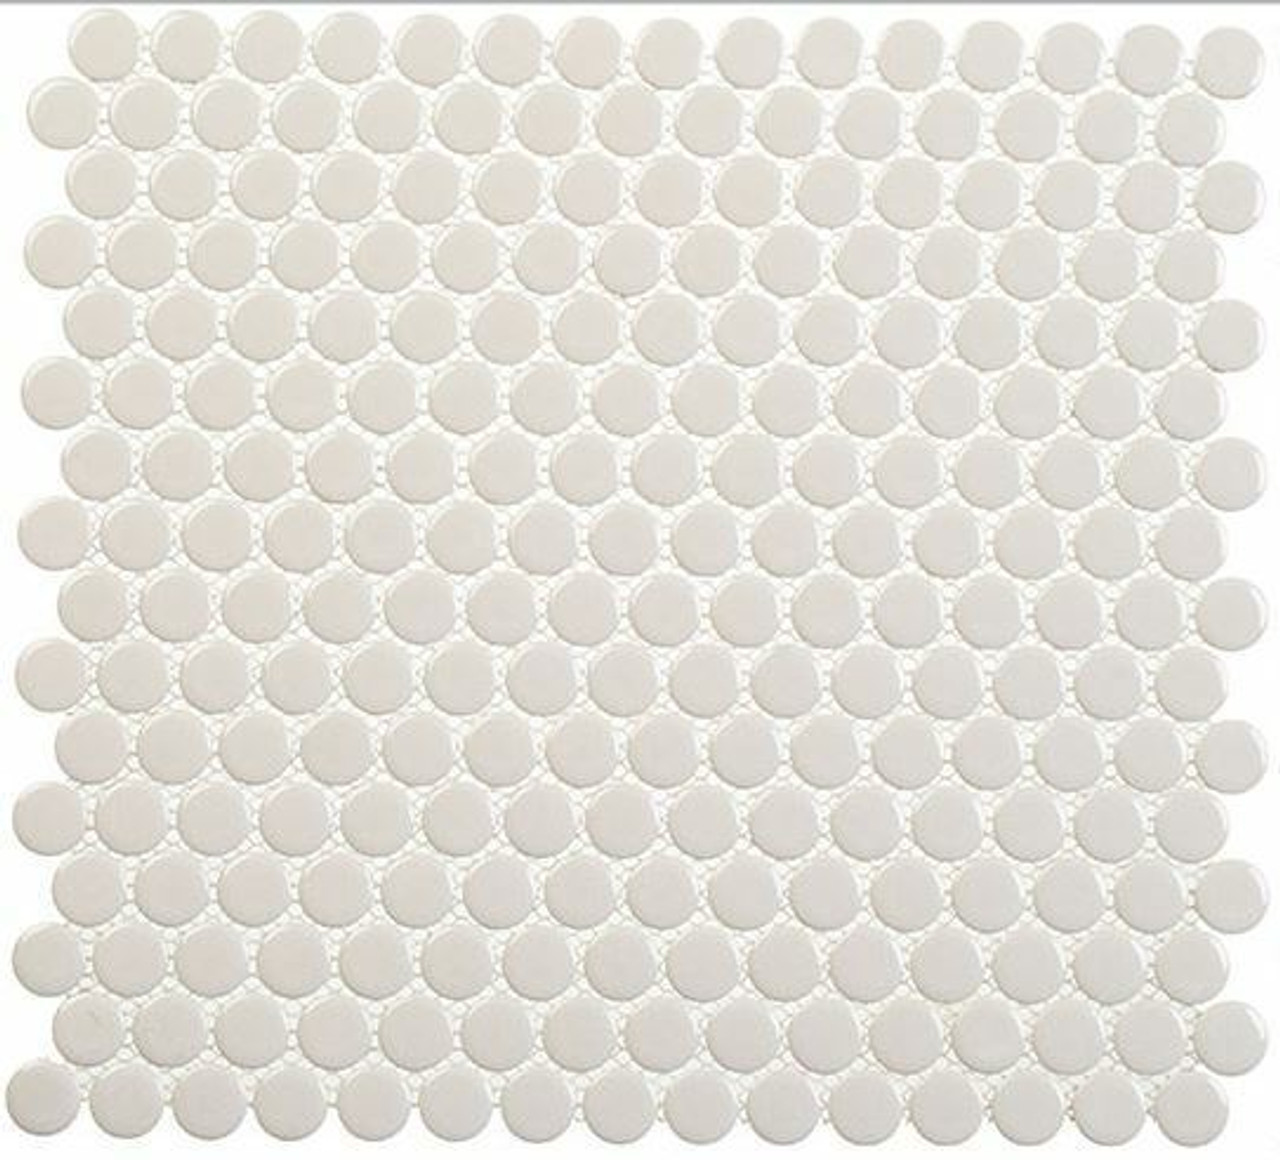 Bella Glass Tiles Freedom Avenue Penny Round Empire Place FDM1802